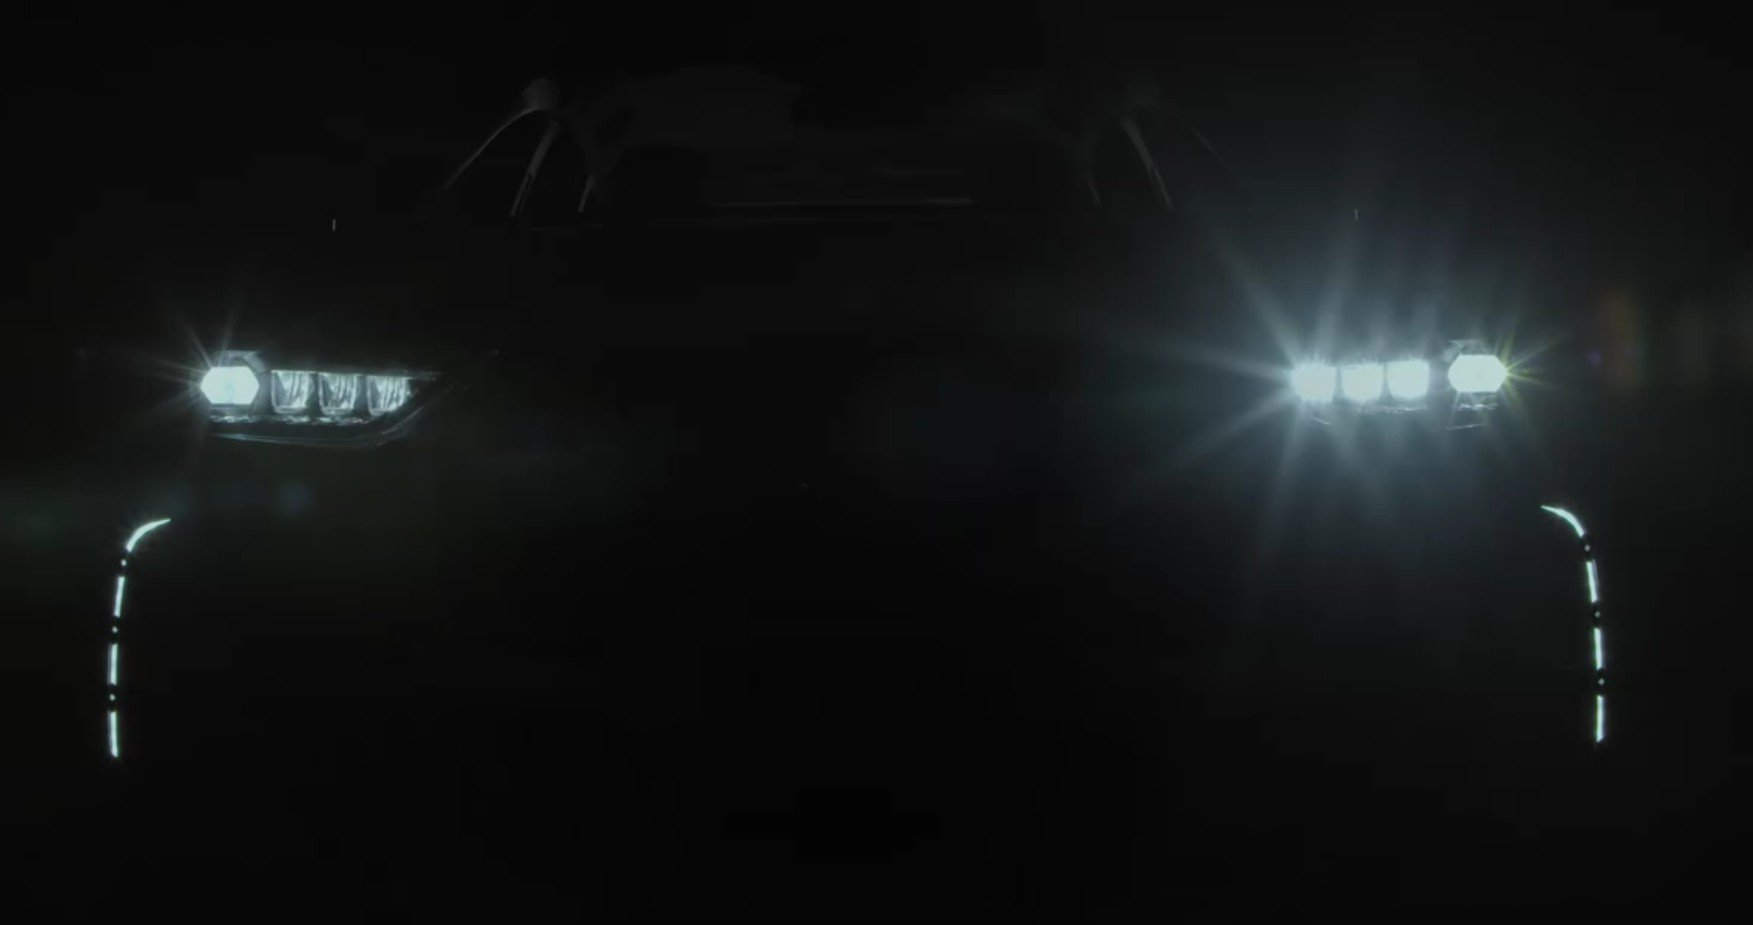 DS7 Crossback LED